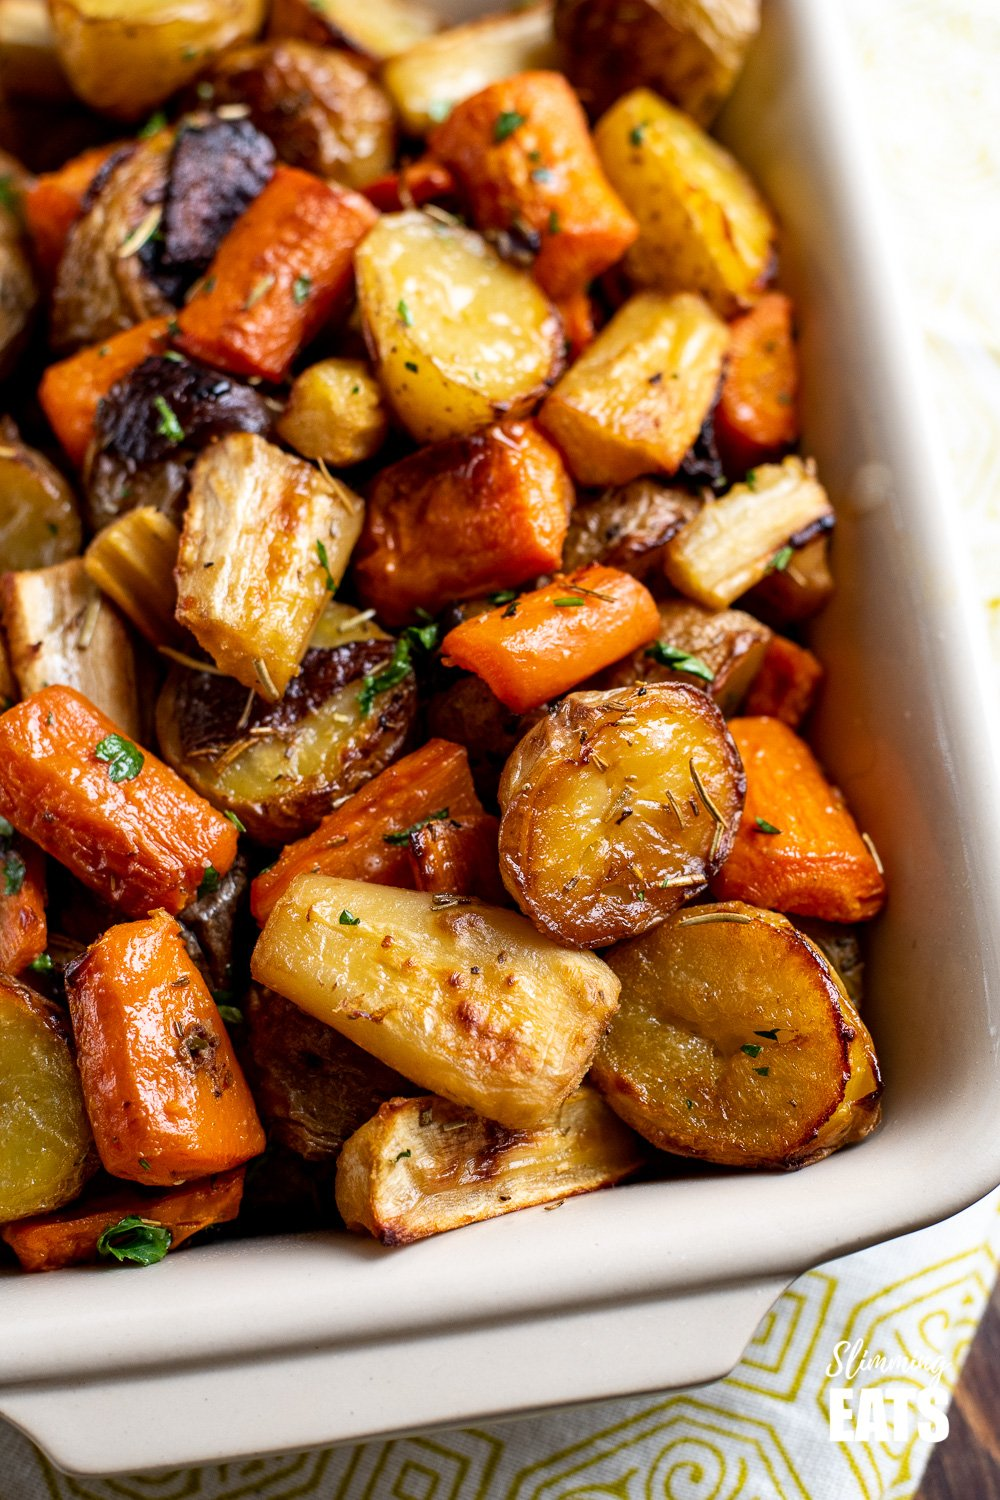 close up of Rosemary Roasted Potatoes, Parsnips, Carrots and Onion in dish